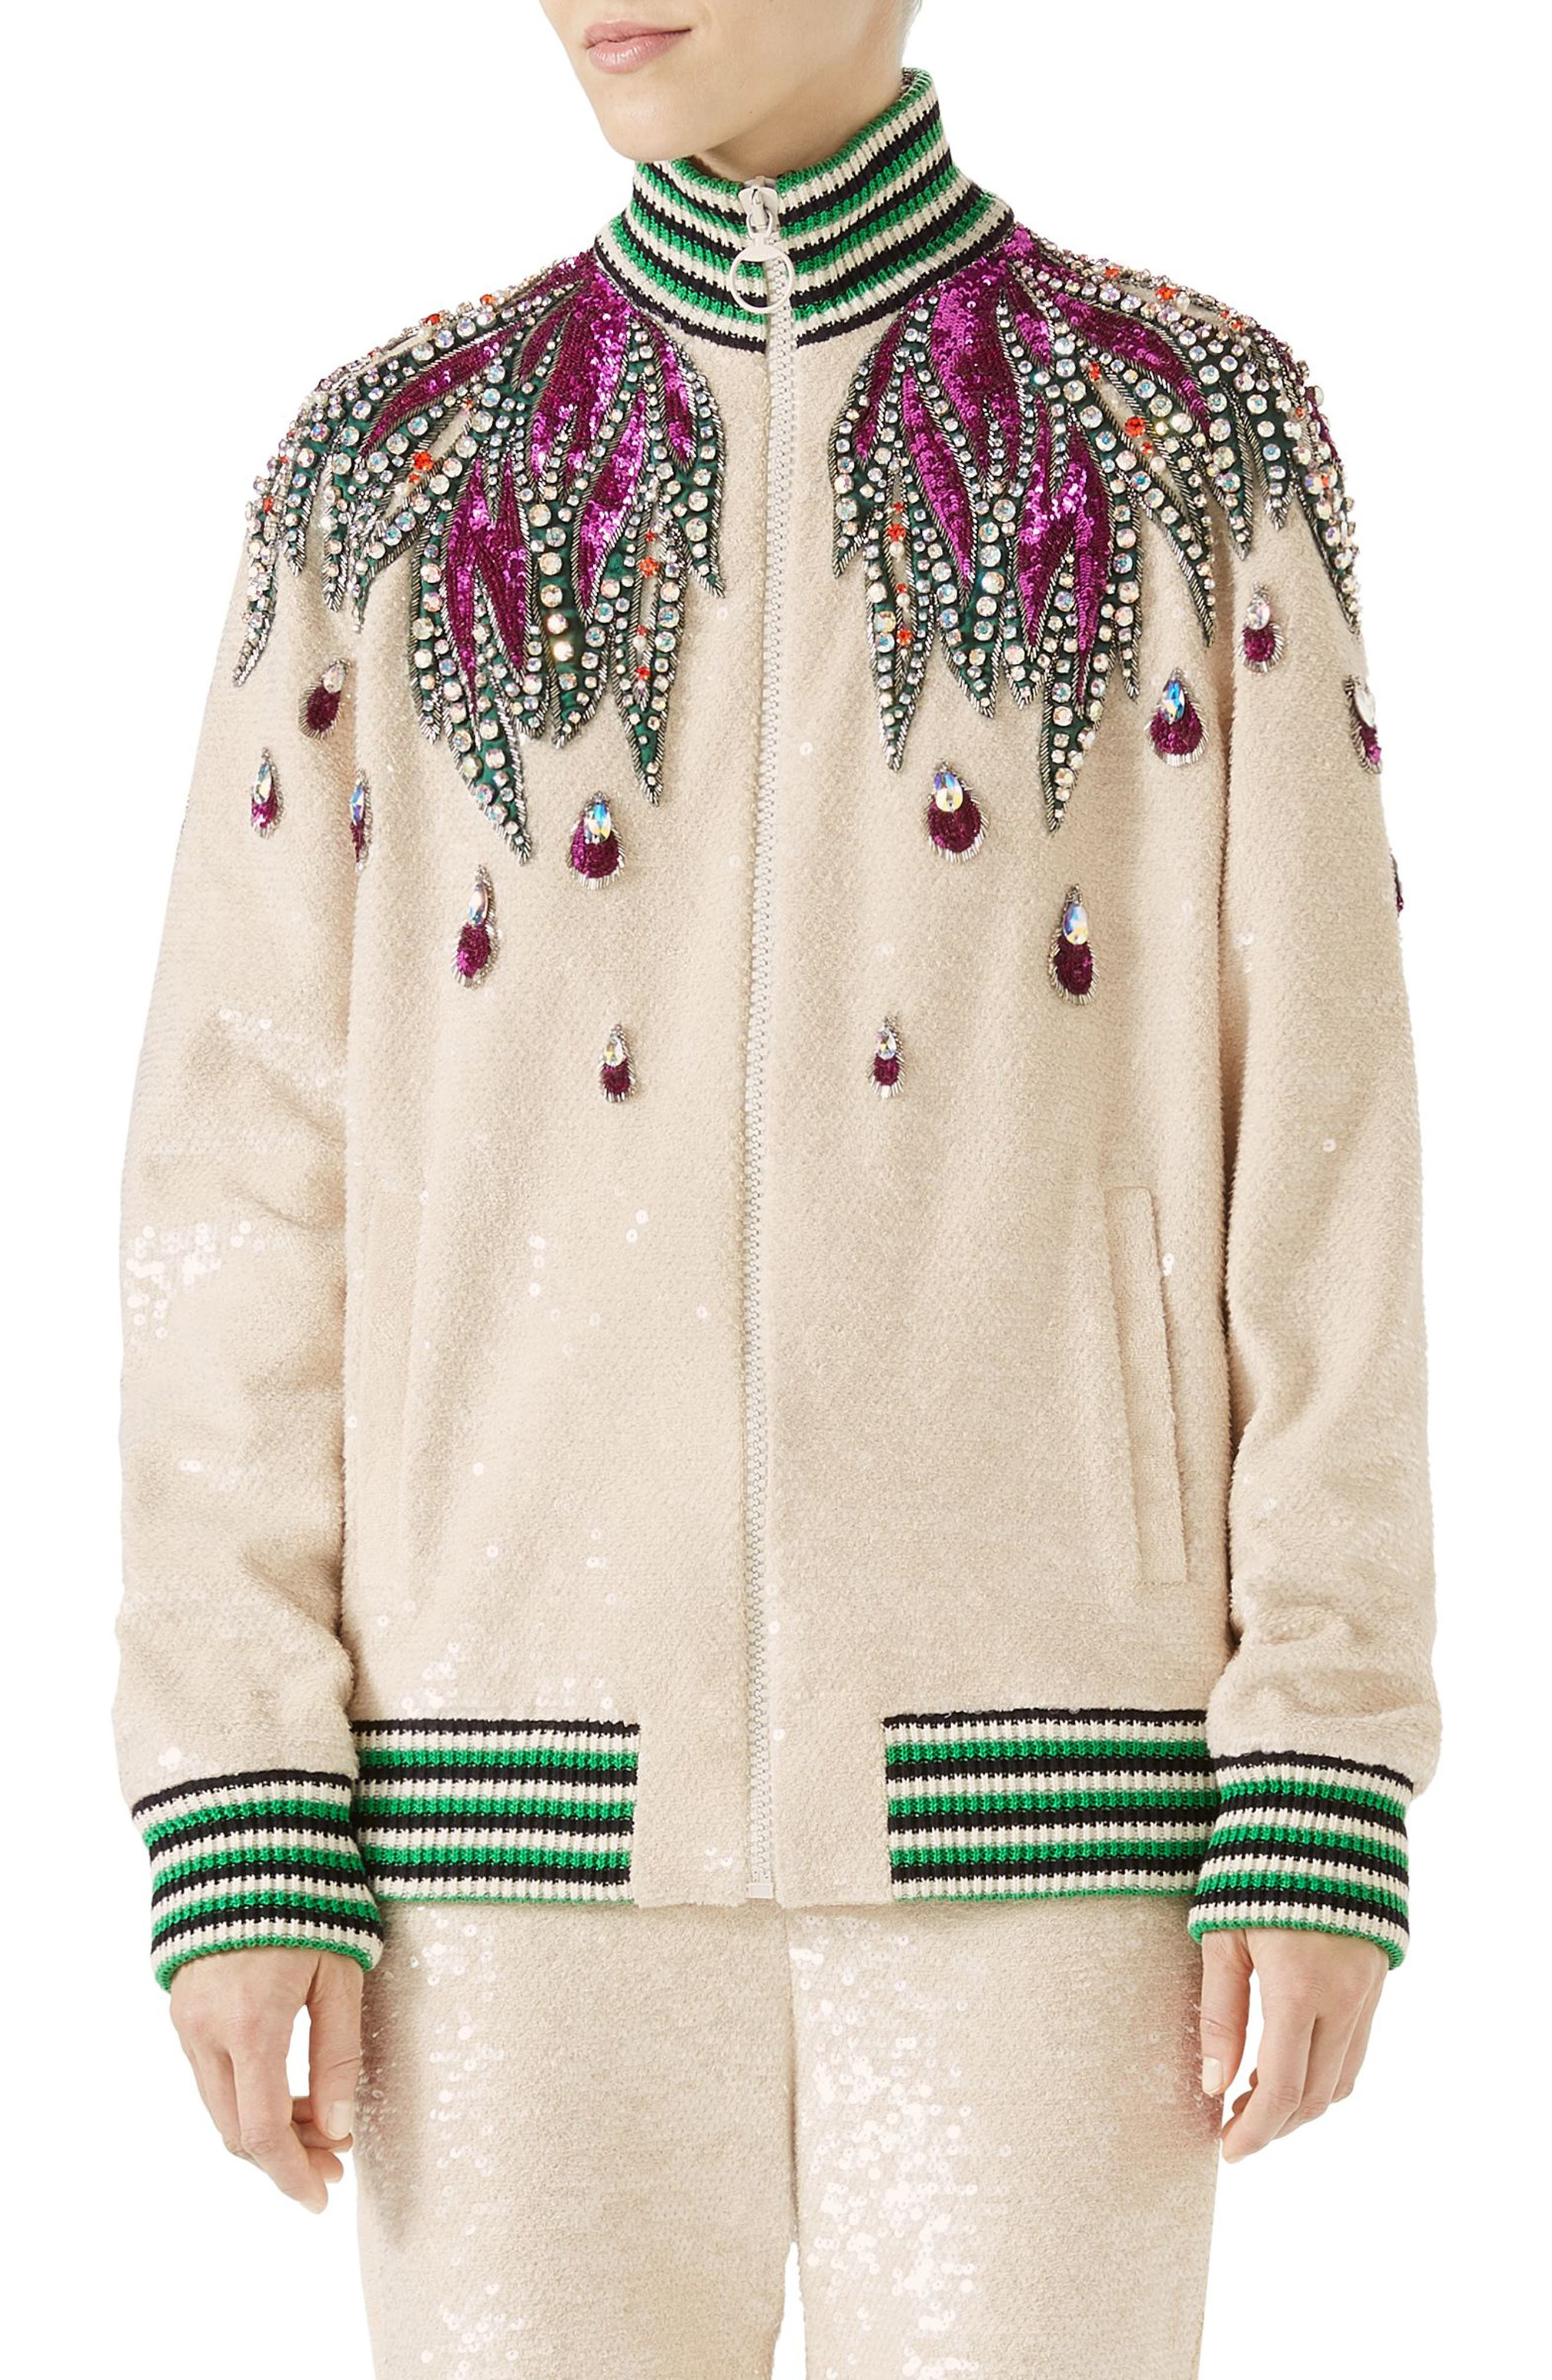 Embellished Track Jacket,                         Main,                         color, Gardenia/ Multicolor